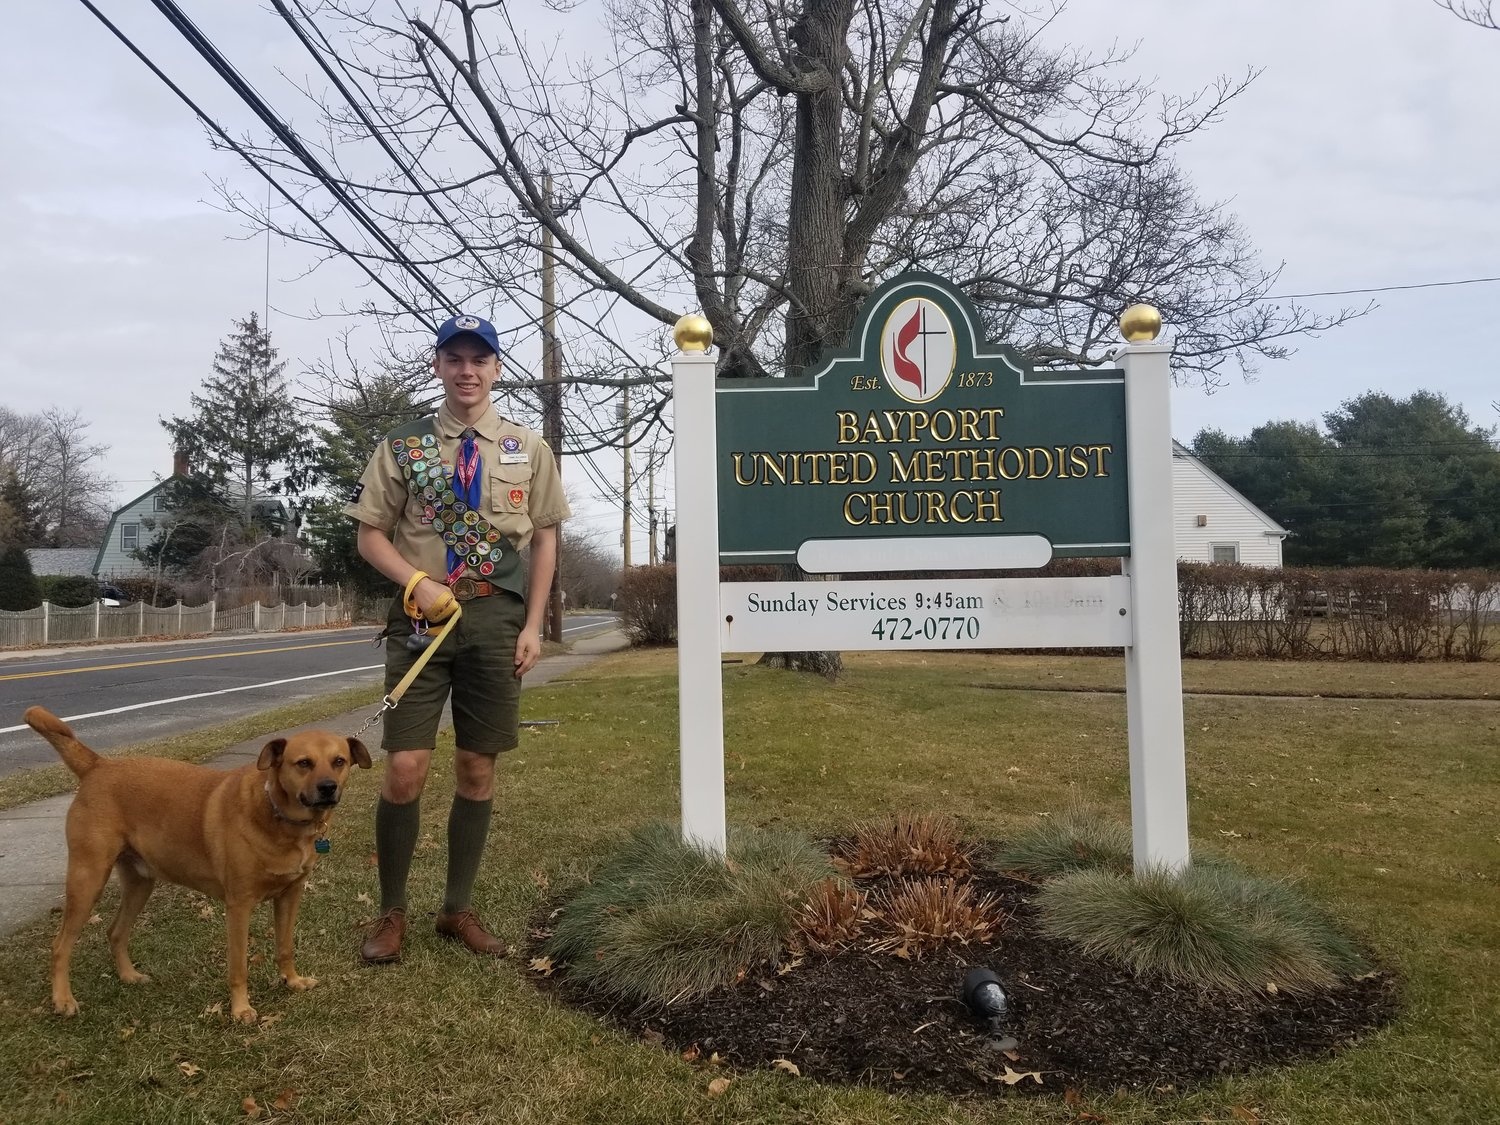 Recently named Eagle Scout, Frank Bollerman, 17, from Blue Point, poses with his loyal dog, Rocky, in front of the Bayport Methodist Church, where he completed his Eagle Scout project.